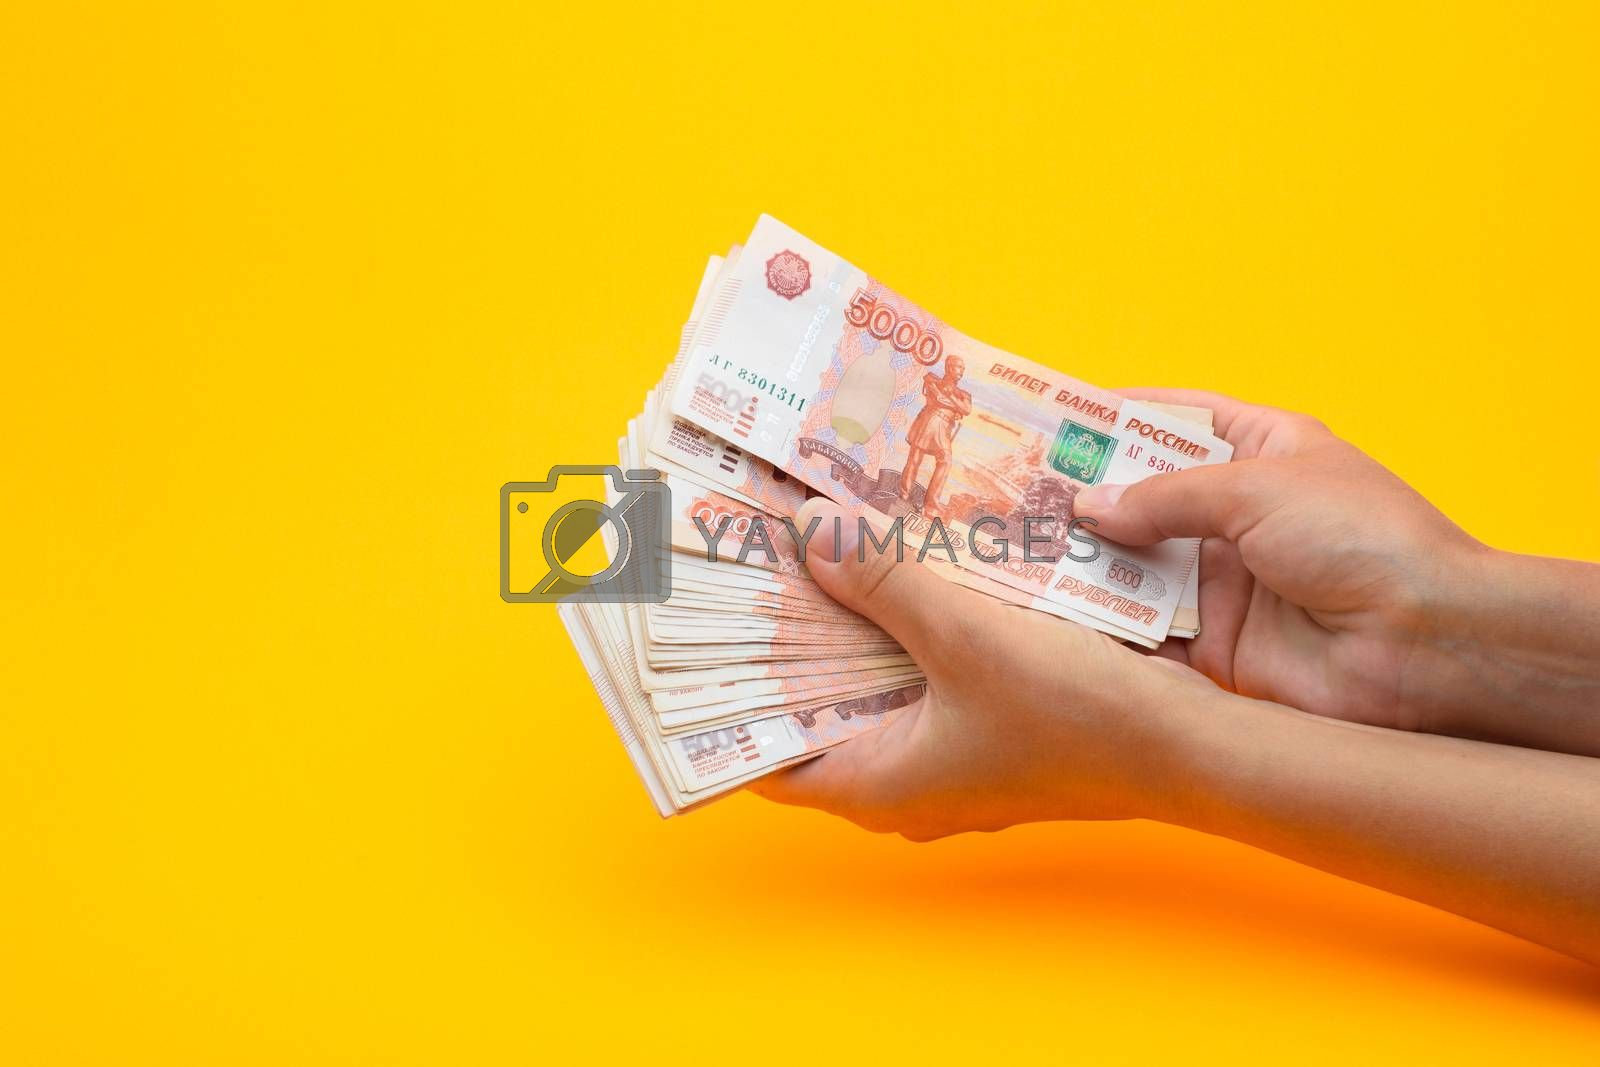 In hands lies a bundle of five thousandth bills on a yellow background